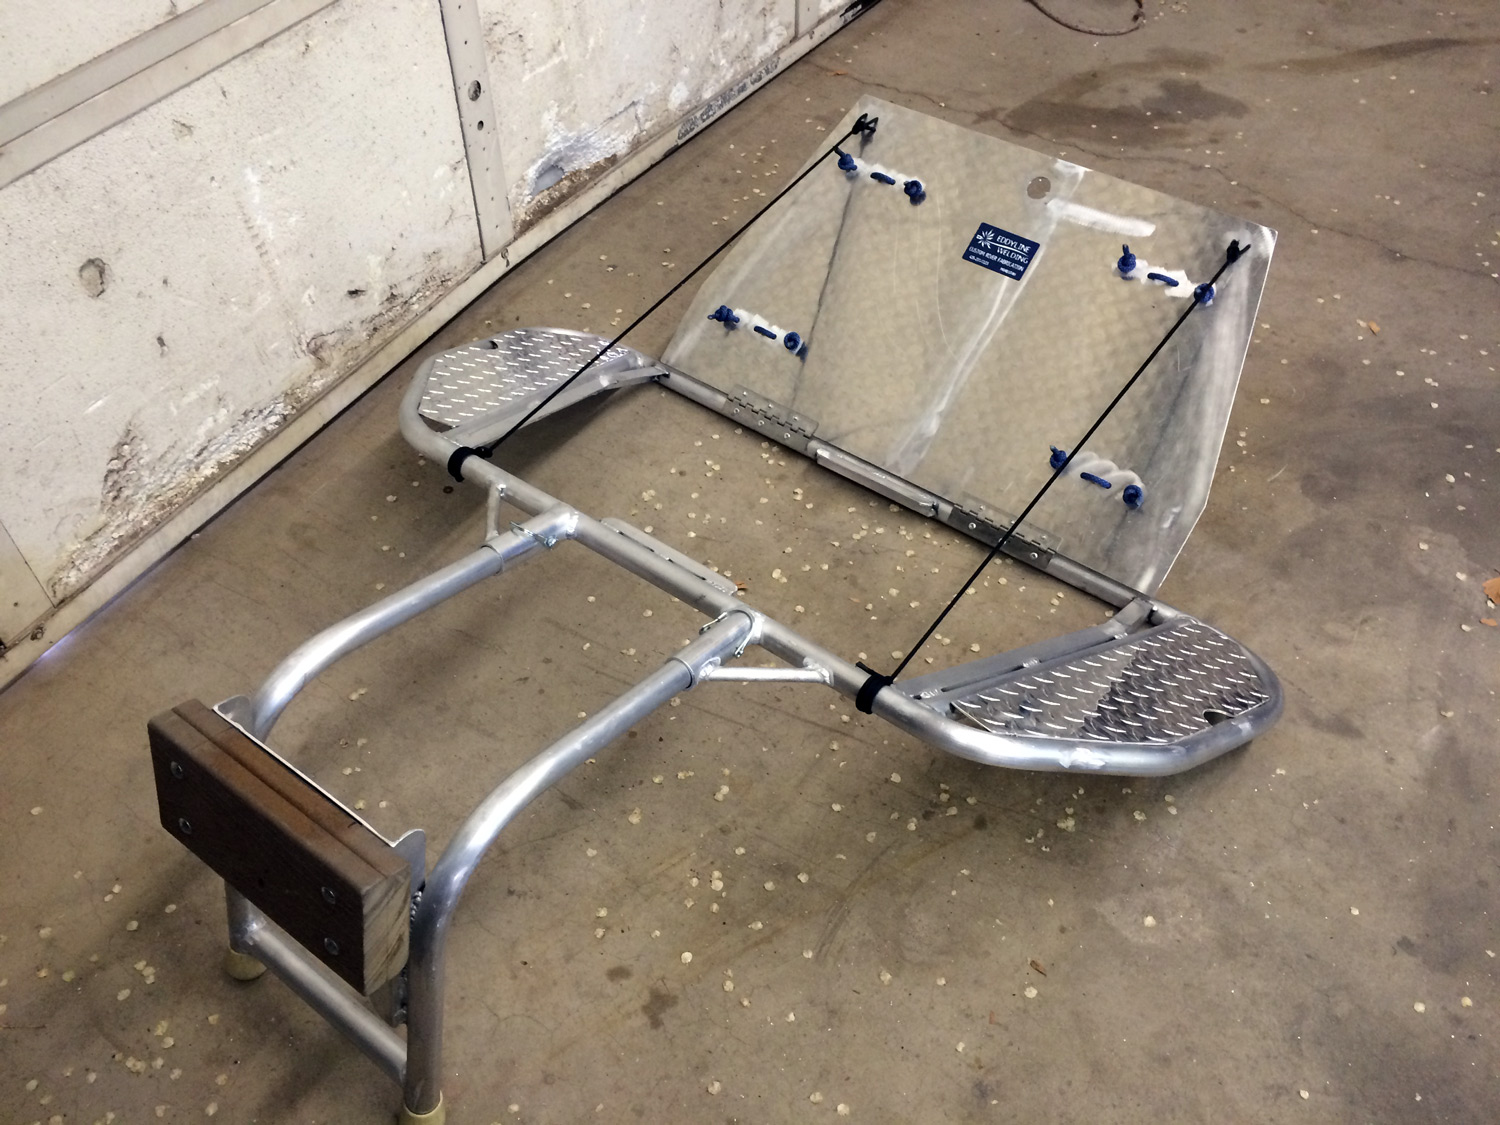 transom for 12' hyside with a 4hp motor